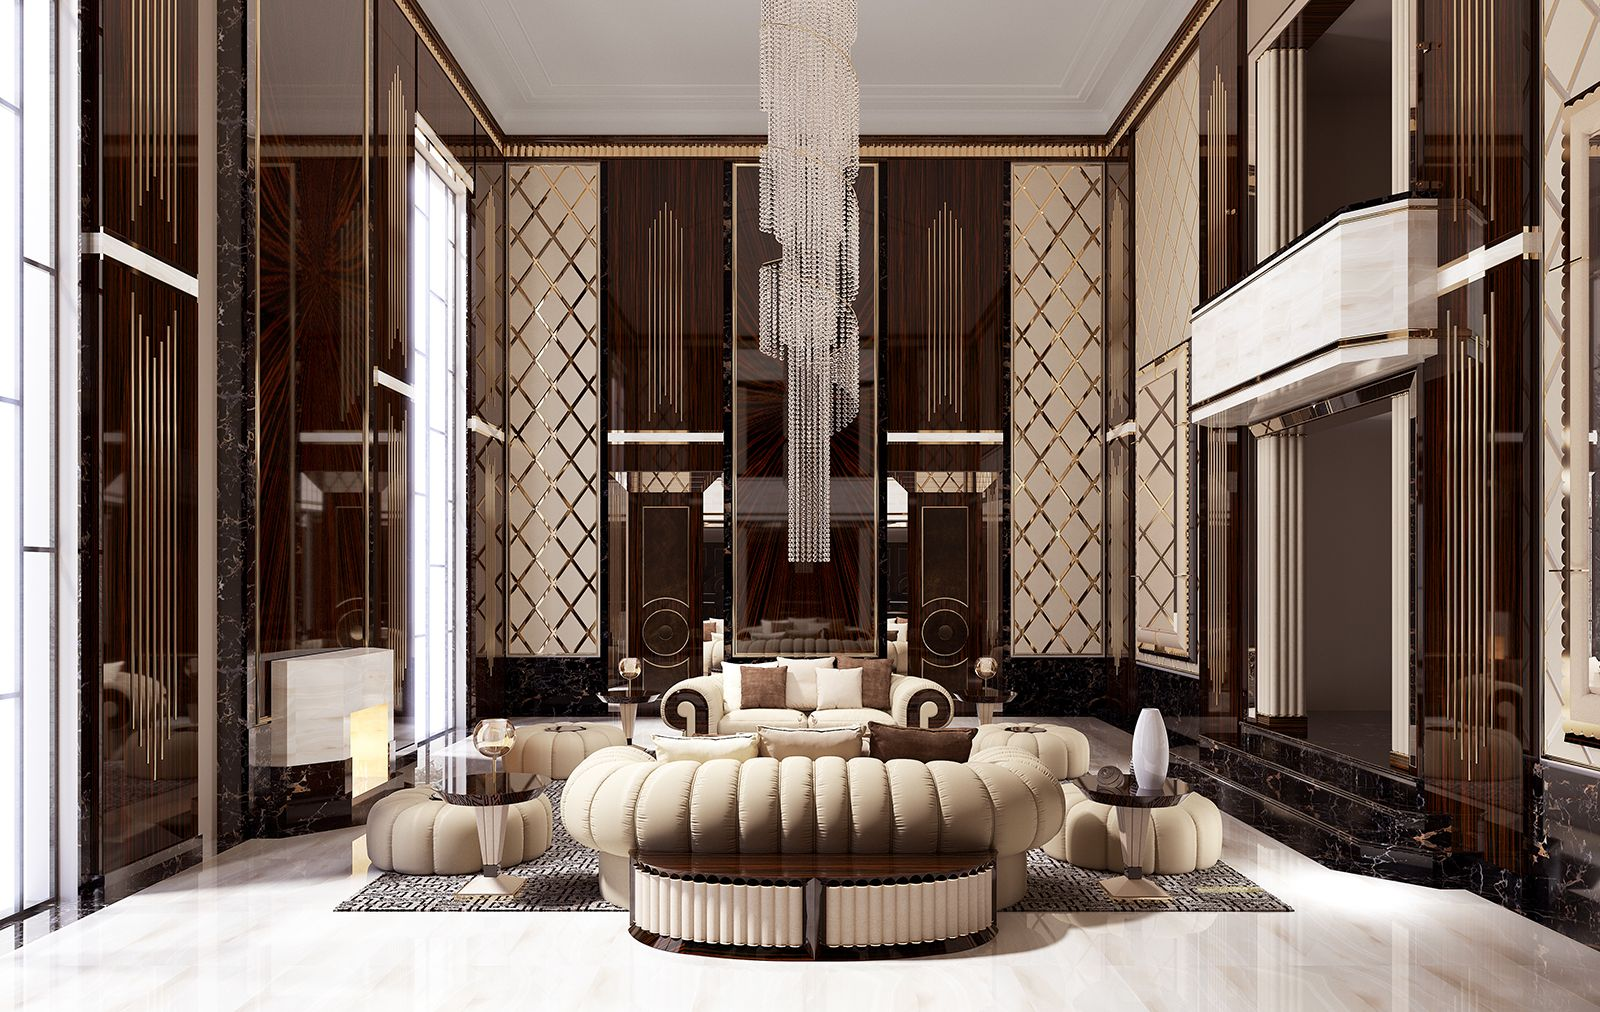 Orion Collection Turriit Luxury Italian Living Room Furniture